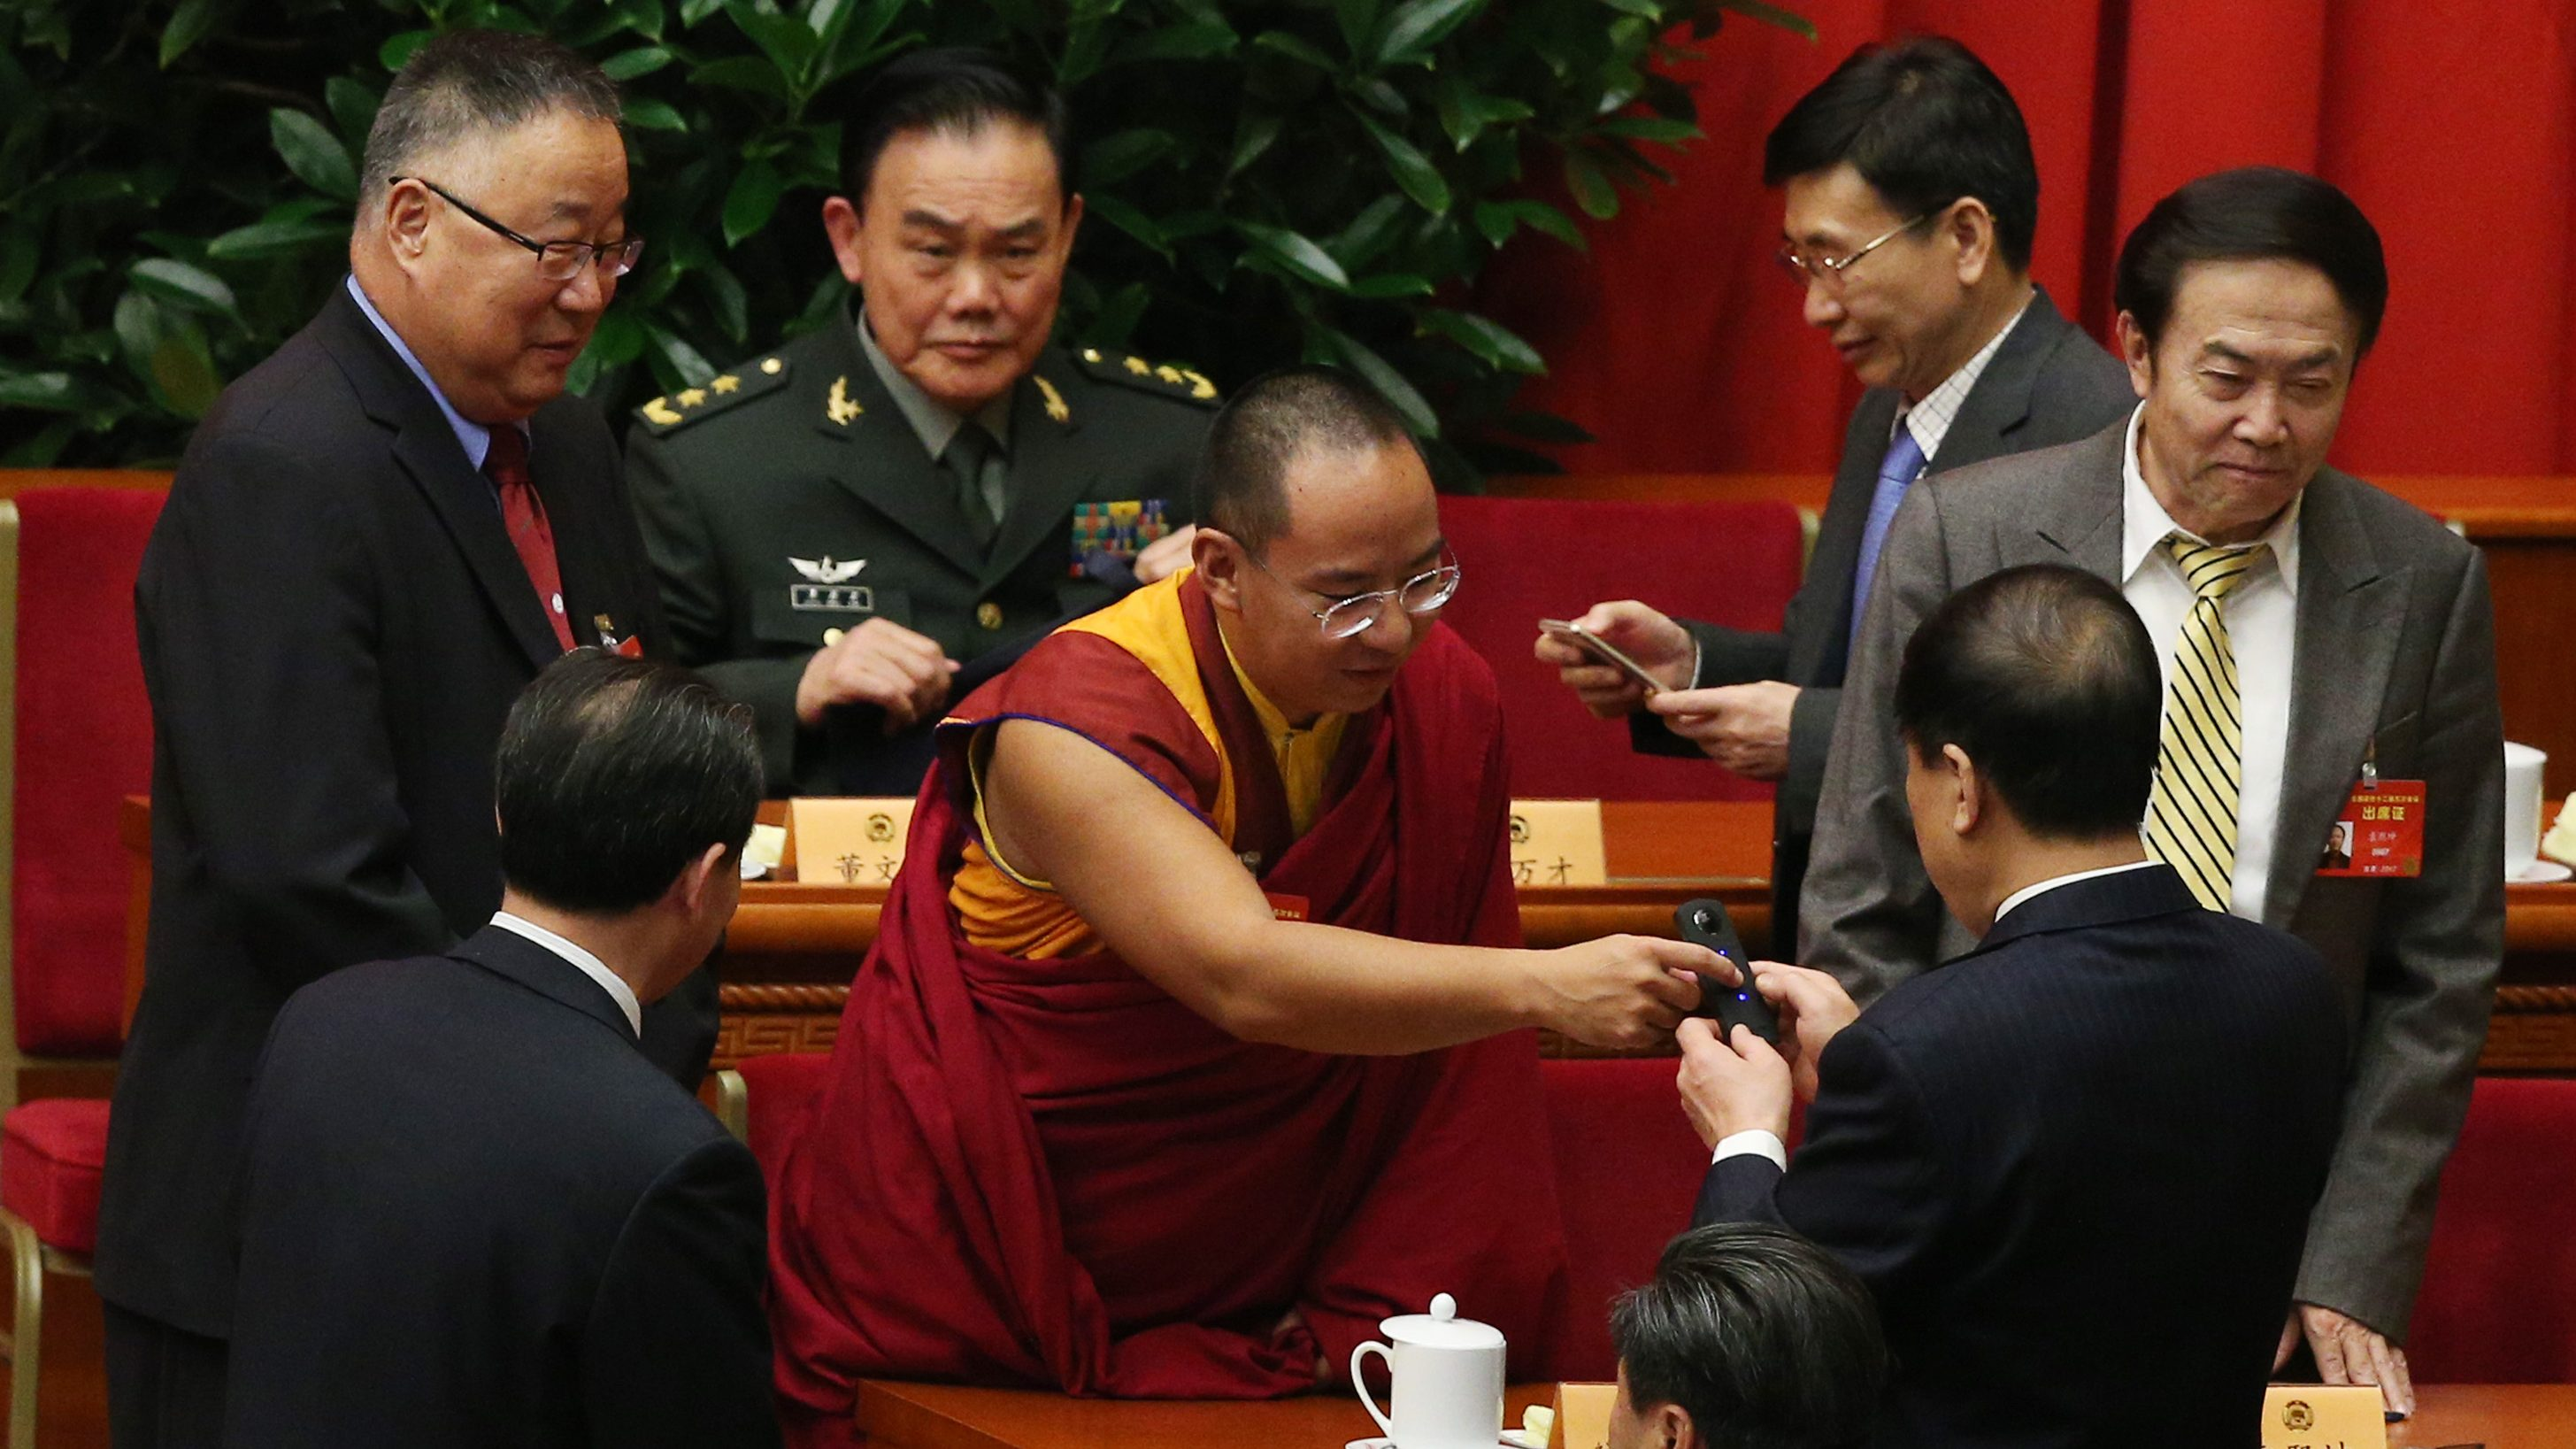 Gyaincain Norbu (C), the eleventh Panchen Lama of Tibetan Buddhism, arrives for the opening of the fifth session of the 12th Chinese People's Political Consultative Conference (CPPCC) National Committee at the Great Hall of the People (GHOP) in Beijing, China, 03 March 2017. The CPPCC is the top advisory body of the Chinese political system and runs alongside the annual plenary meetings of the 12th National People's Congress (NPC), together known as 'Lianghui' or 'Two Meetings'.